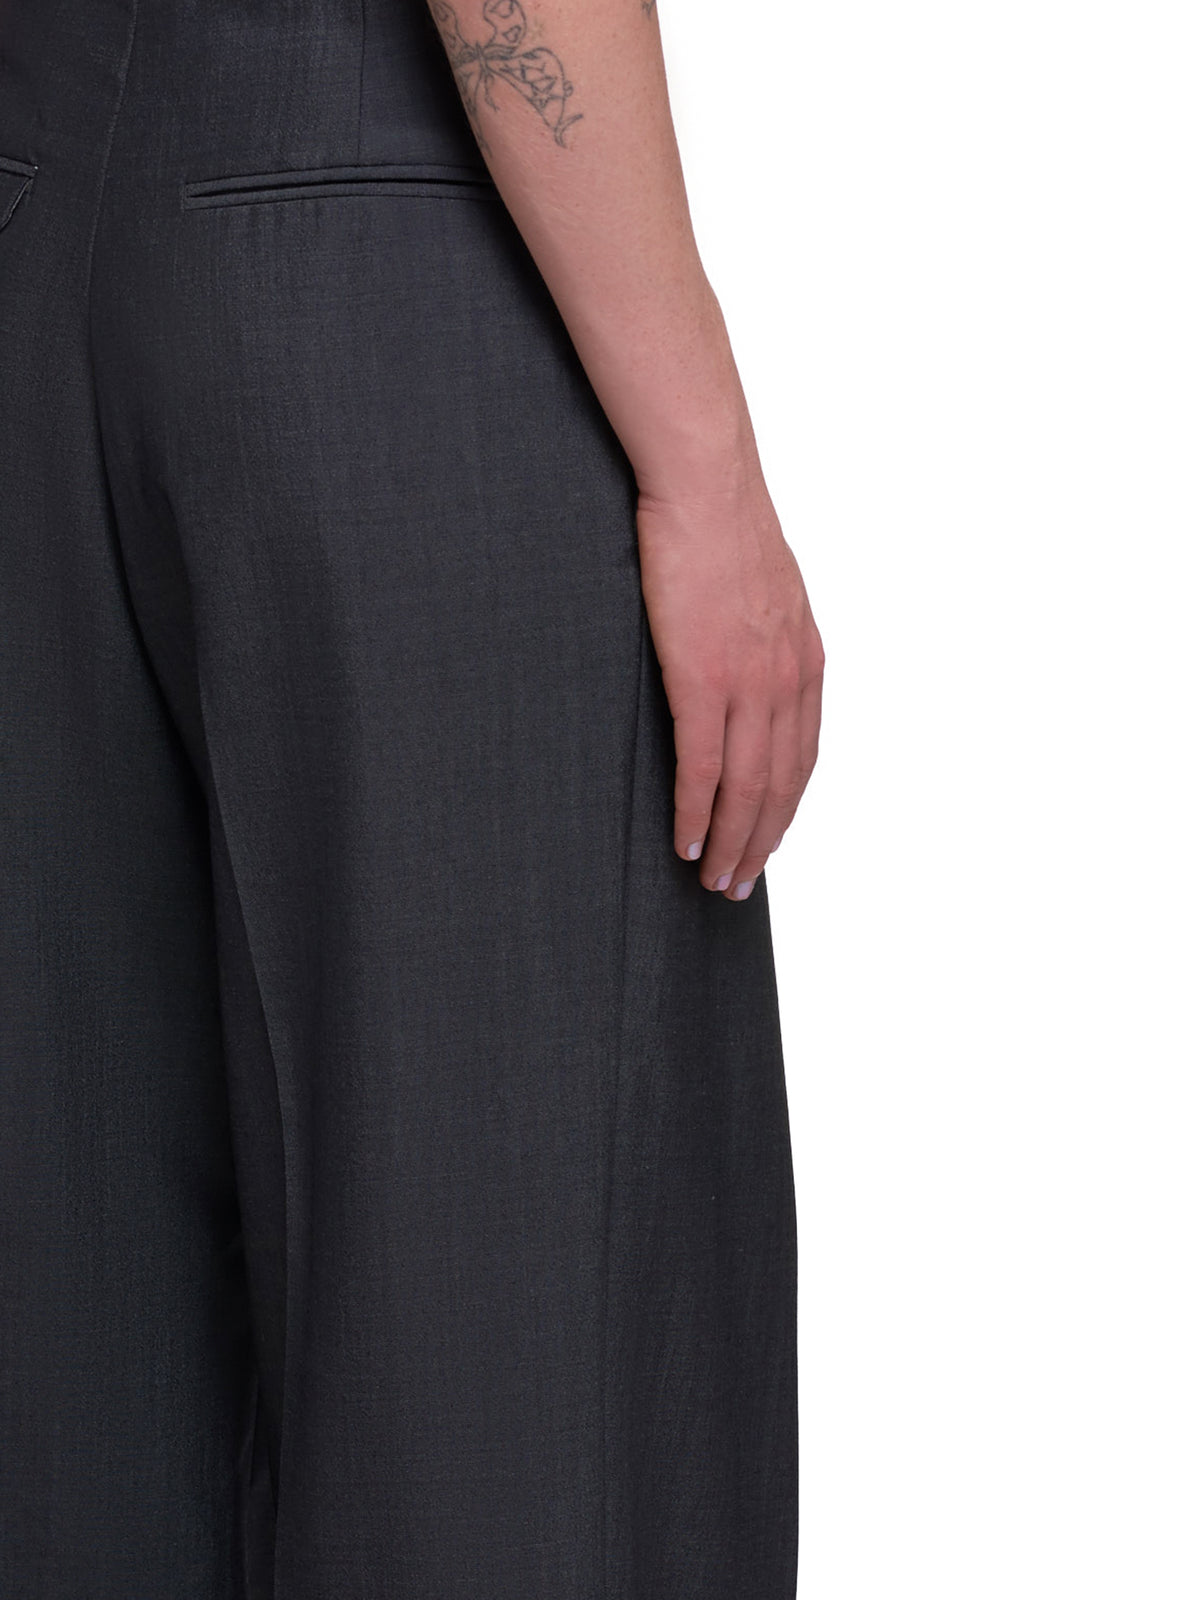 Toga Archives Pants | H.Lorenzo Detail 2